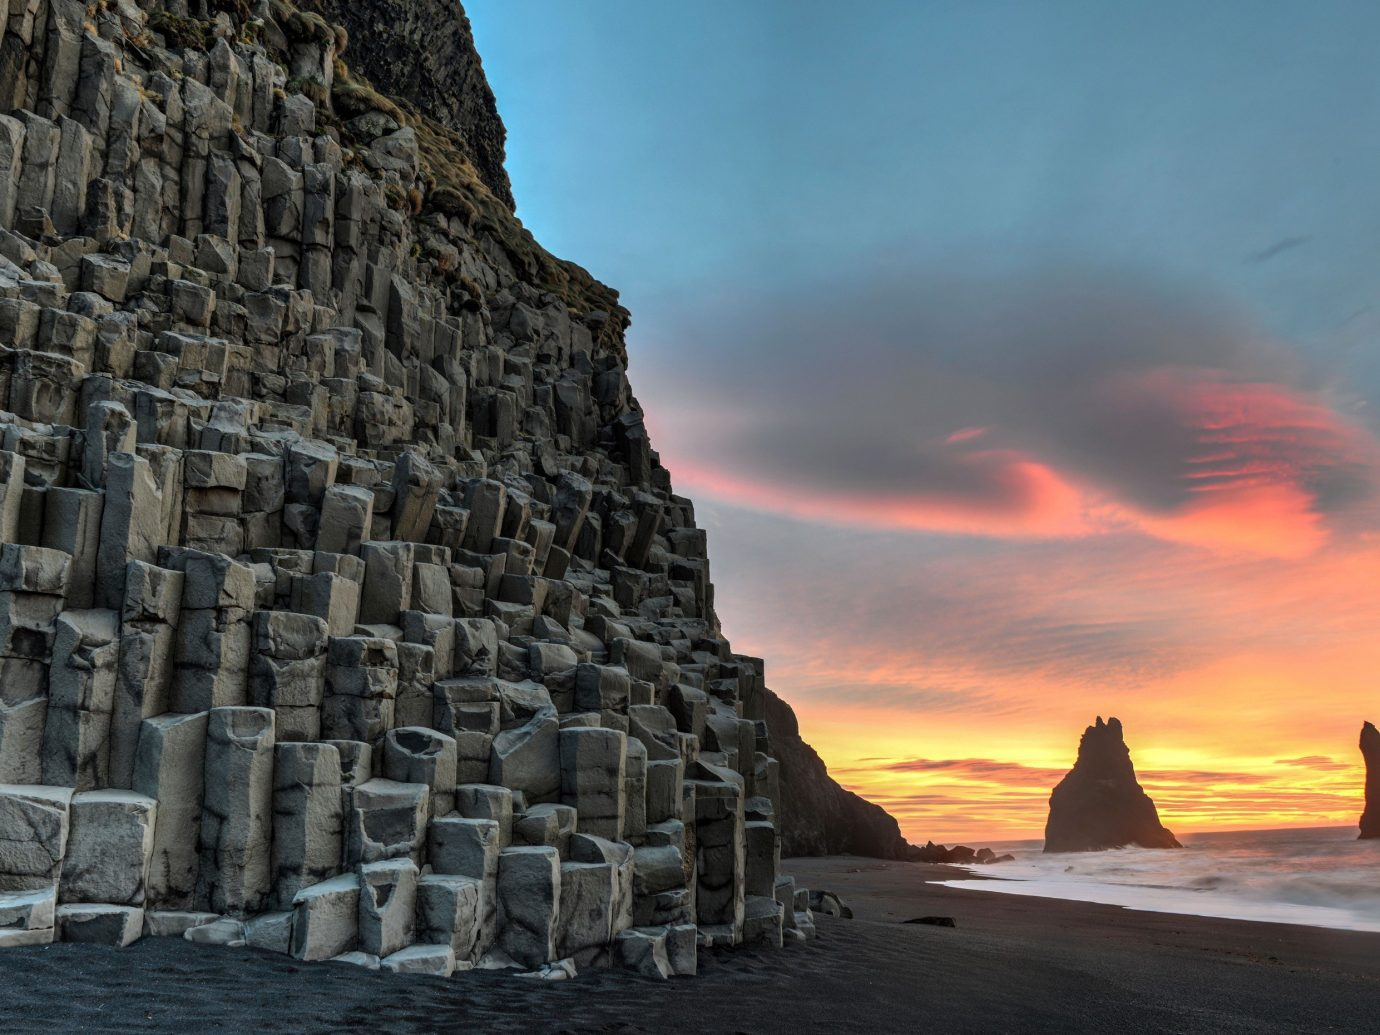 Trip Ideas outdoor rock mountain stone Coast Sea cliff terrain monument Ruins formation temple cape ancient history material